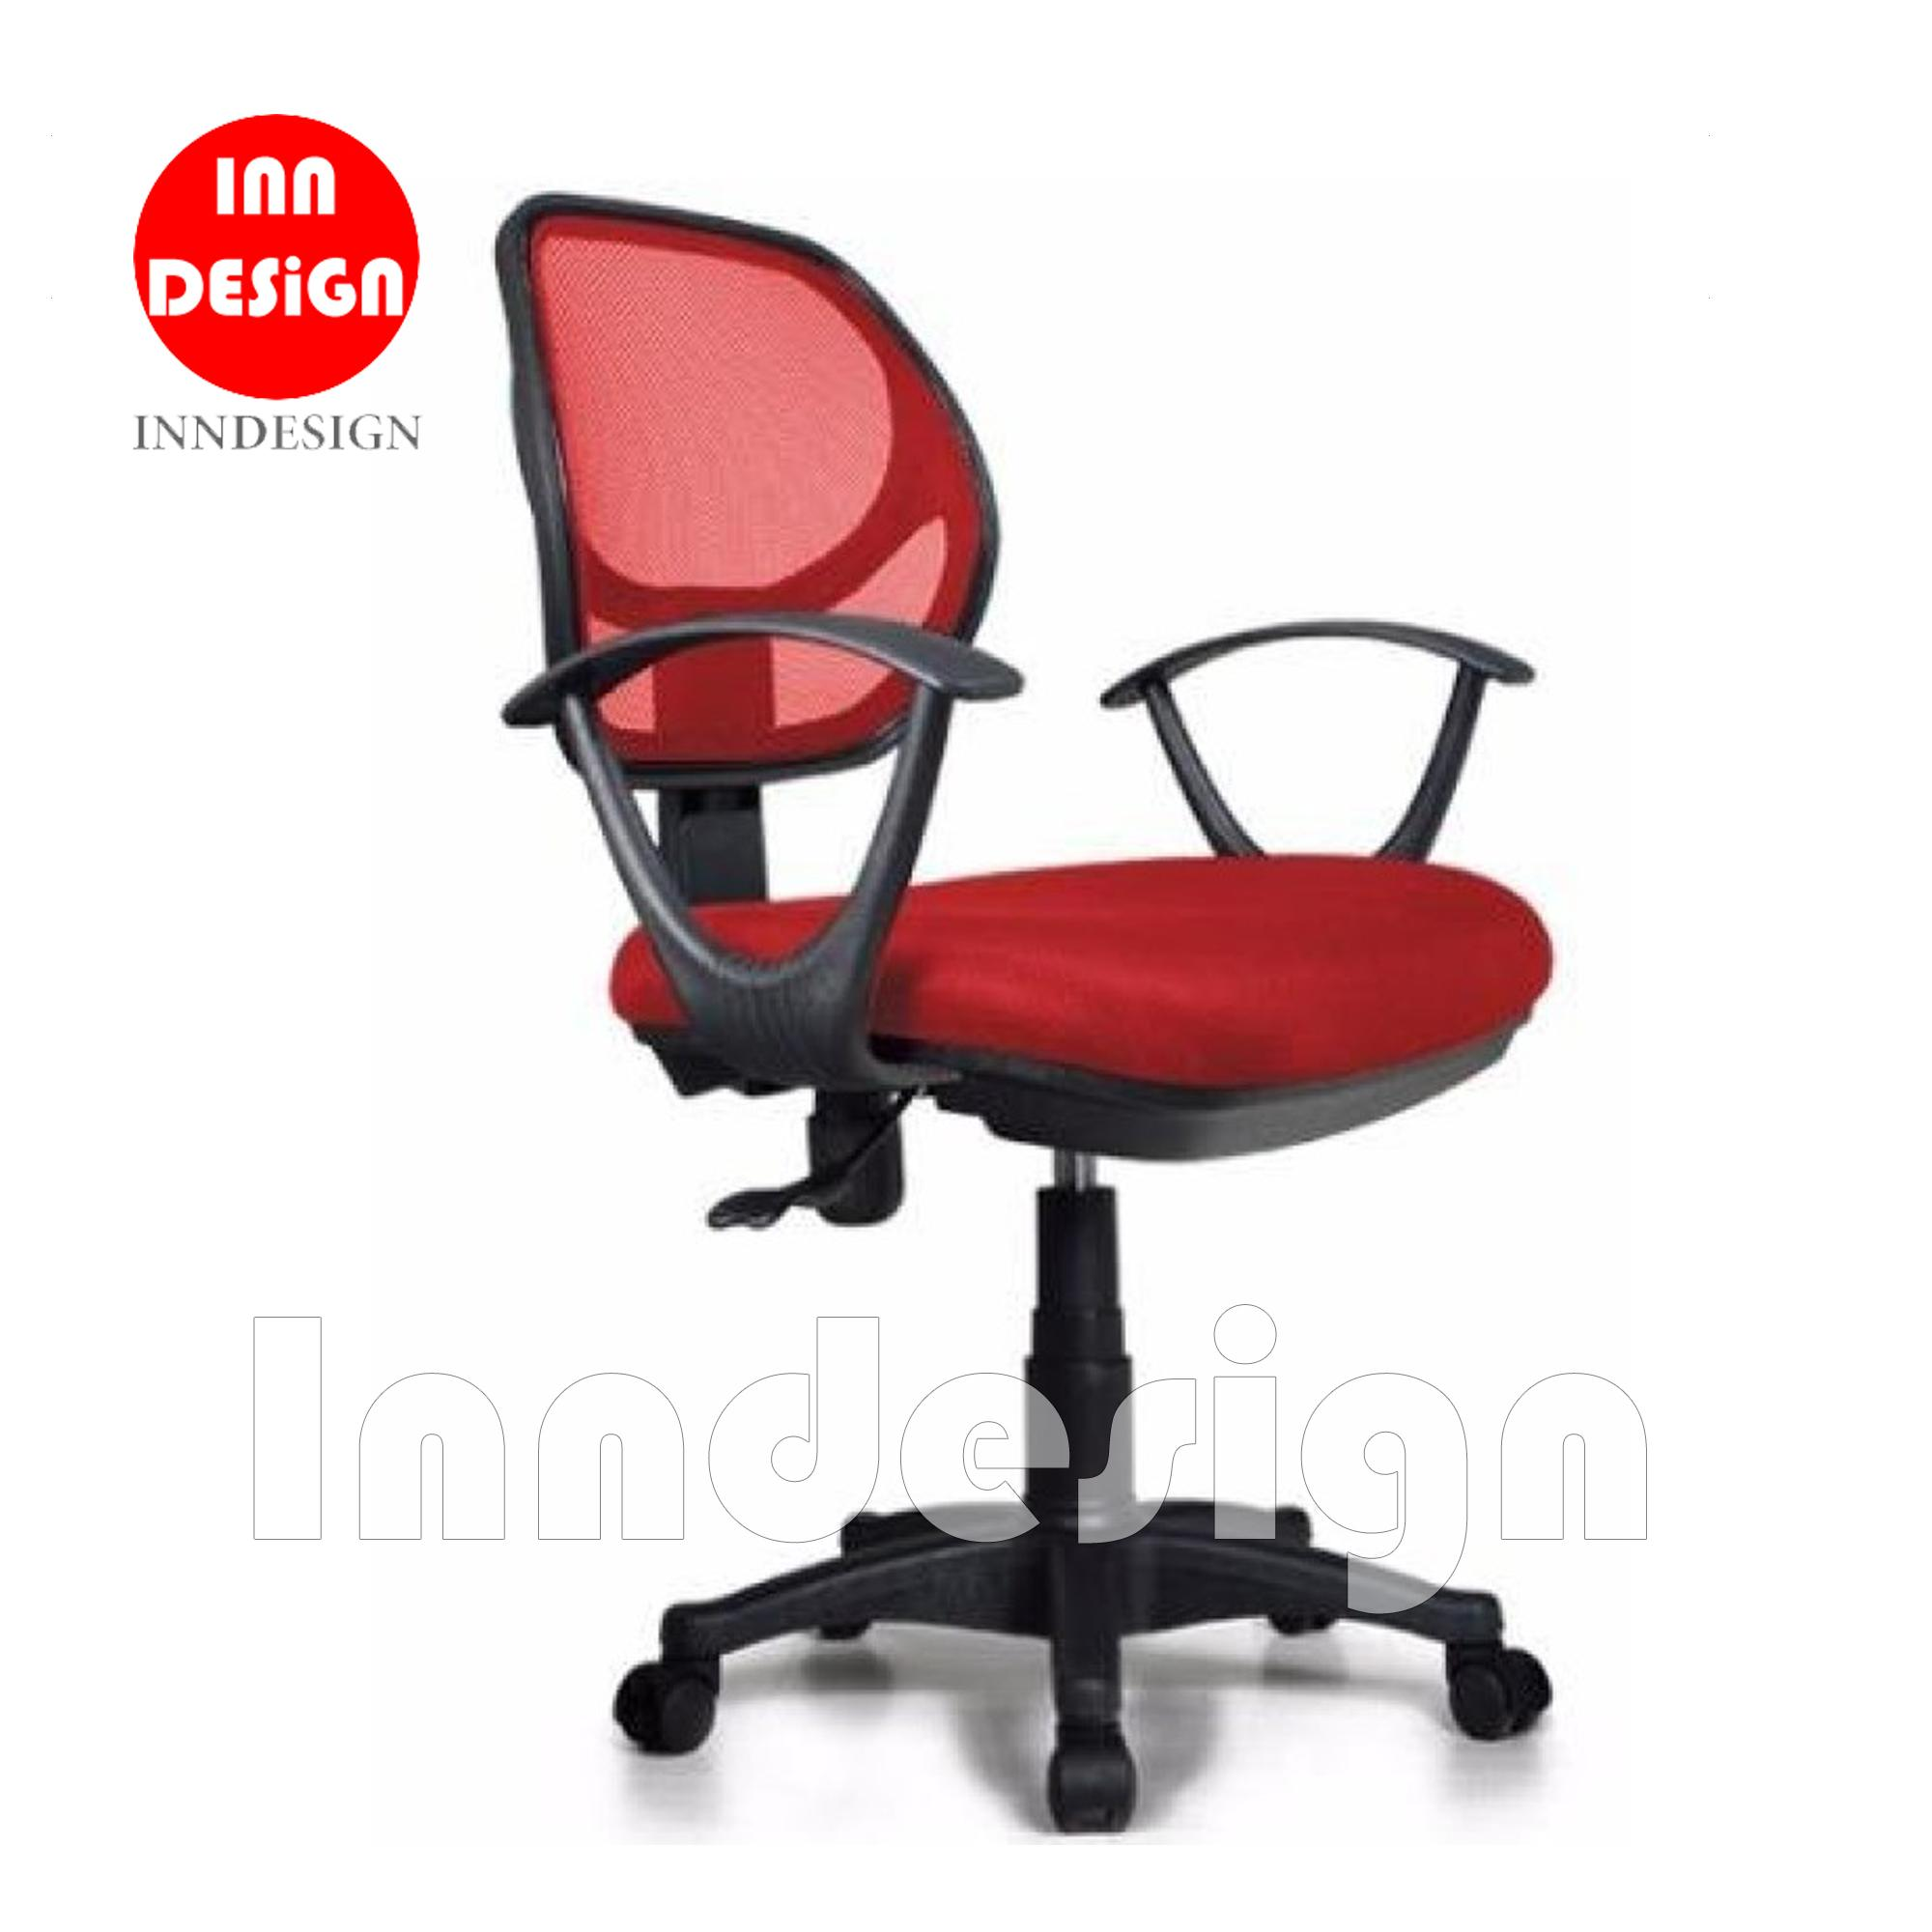 Zina Adjustable Swivel Mesh Office Chair with PVC Nylon Leg / Study Chair / Chair (Red)